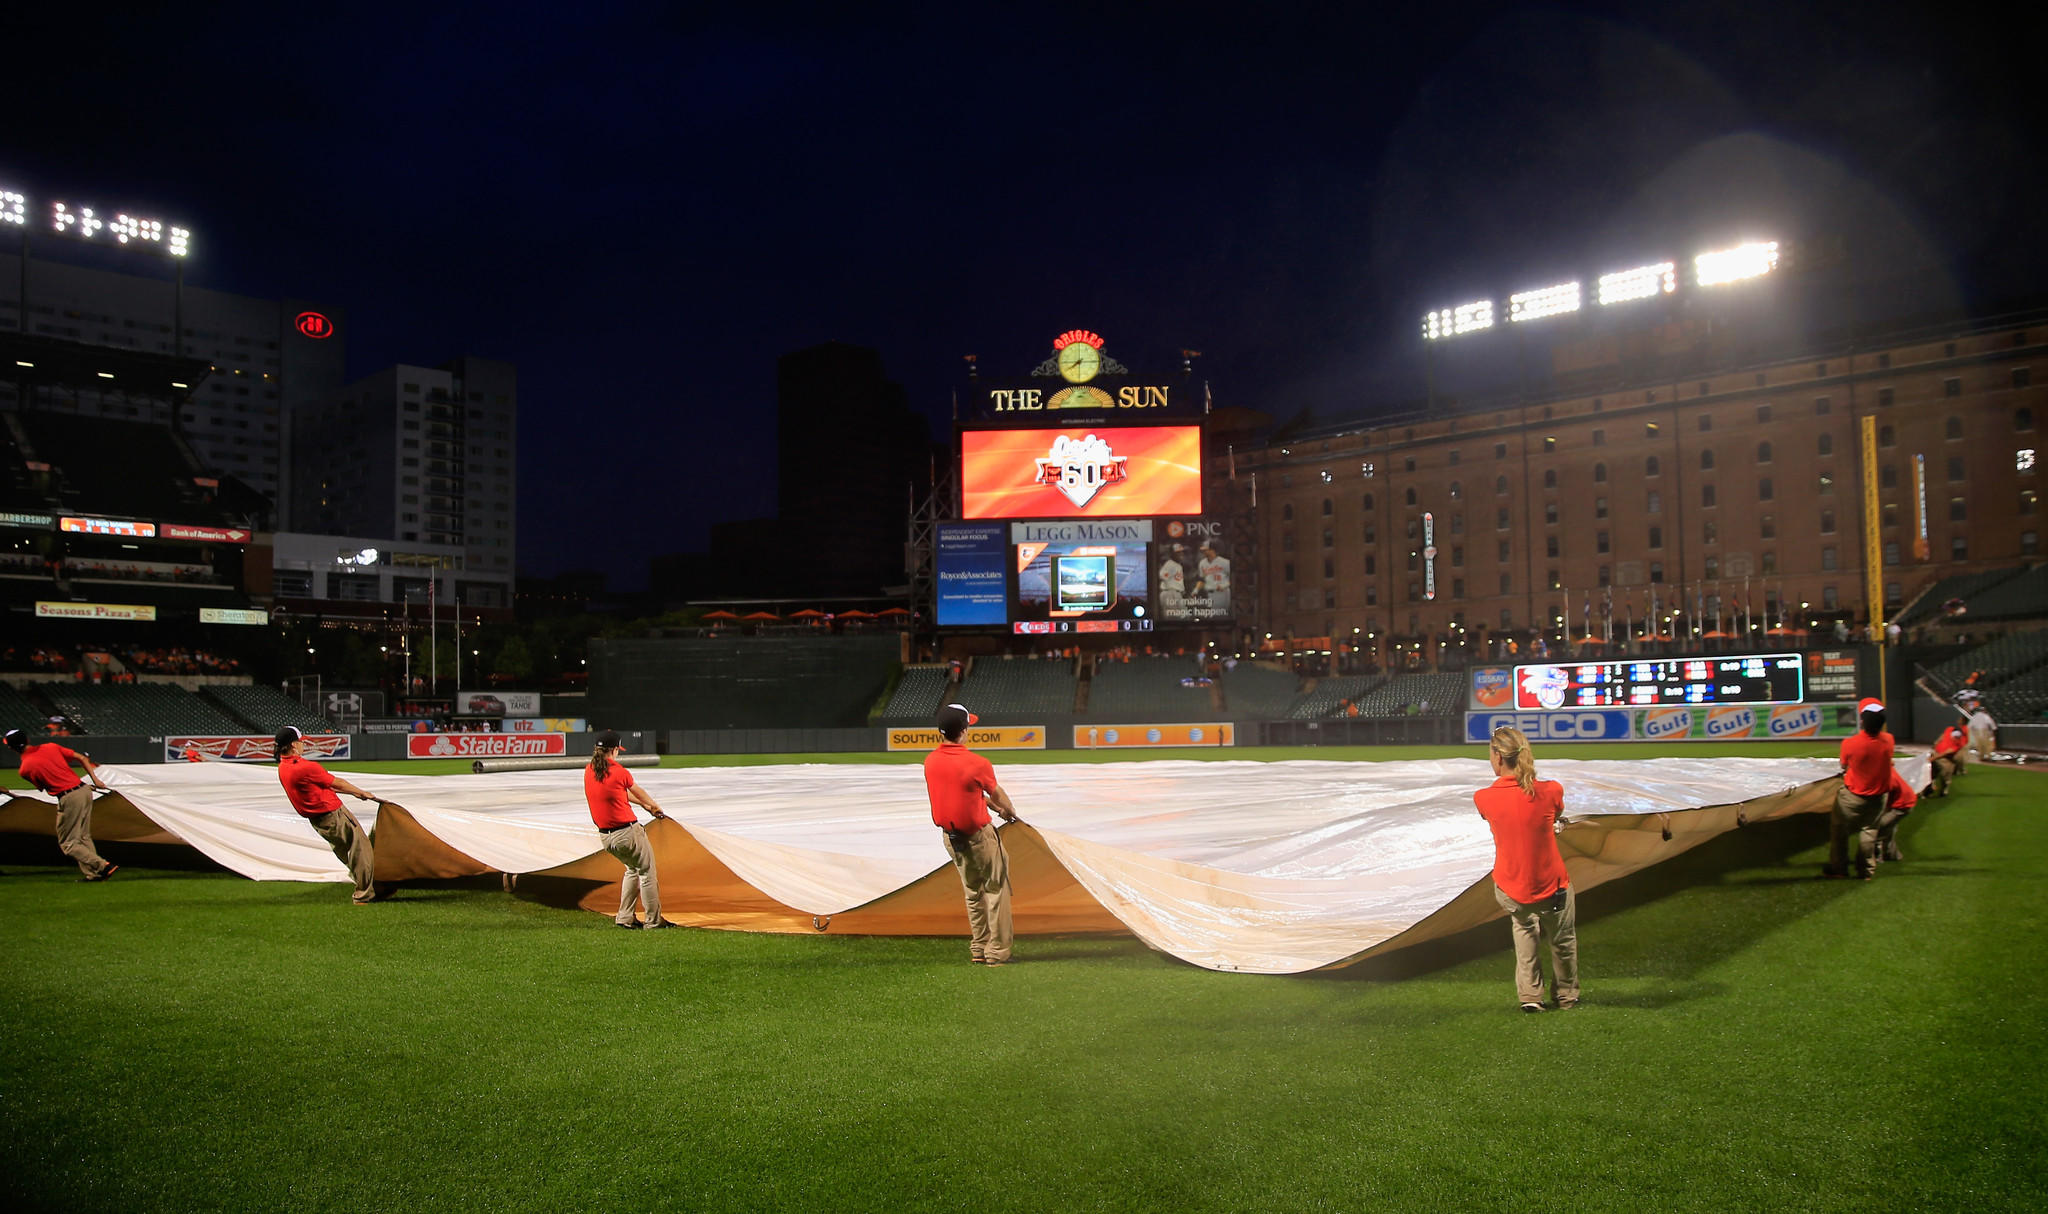 Members of the grounds crew pull the tarp on the field during a rain delay in the first inning of the Cincinnati Reds and Baltimore Orioles game at Oriole Park at Camden Yards on September 2.